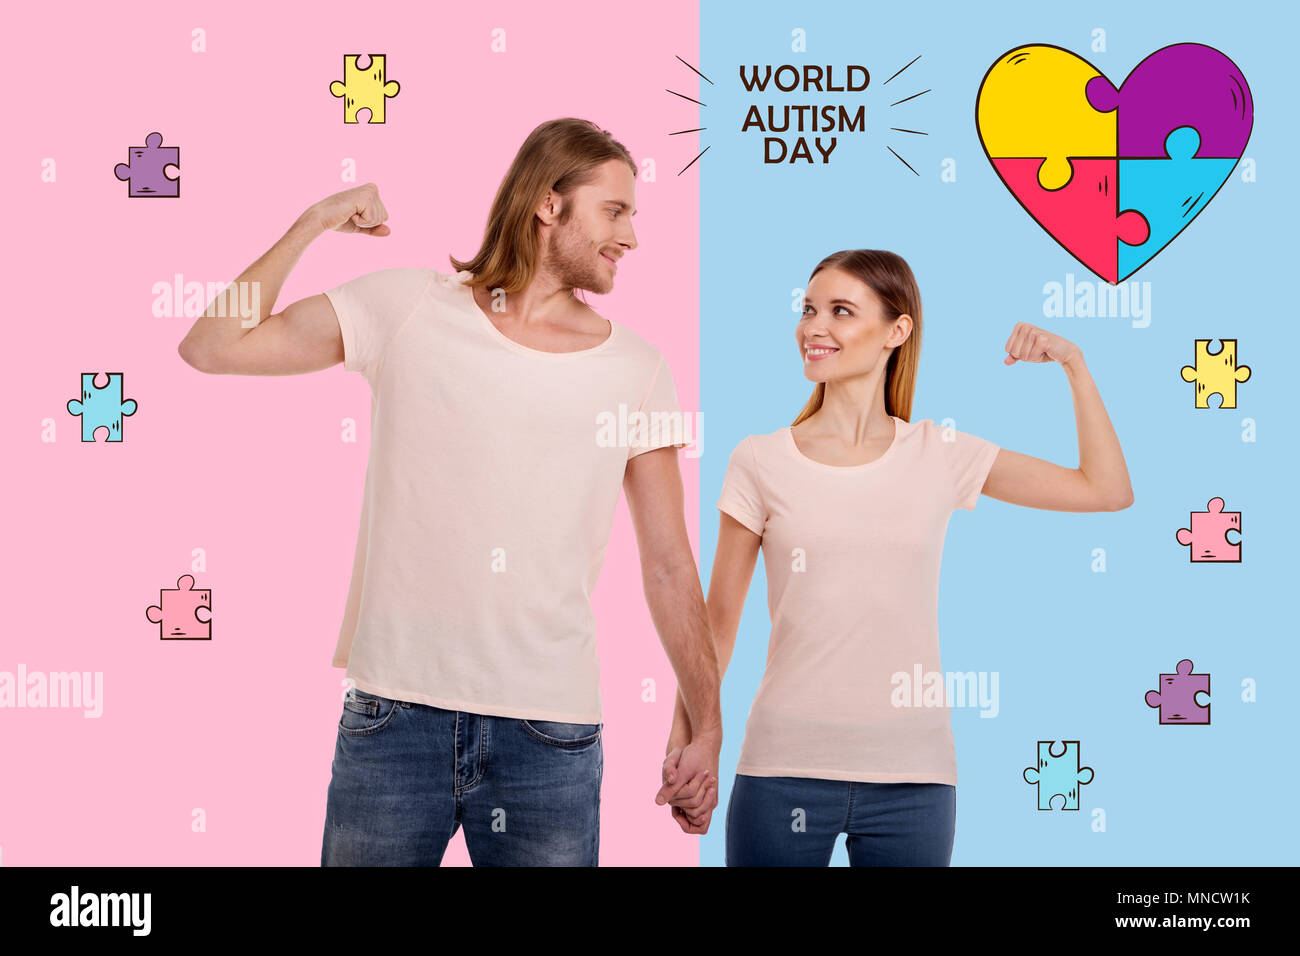 Cheerful parents looking confident on the World autism day - Stock Image